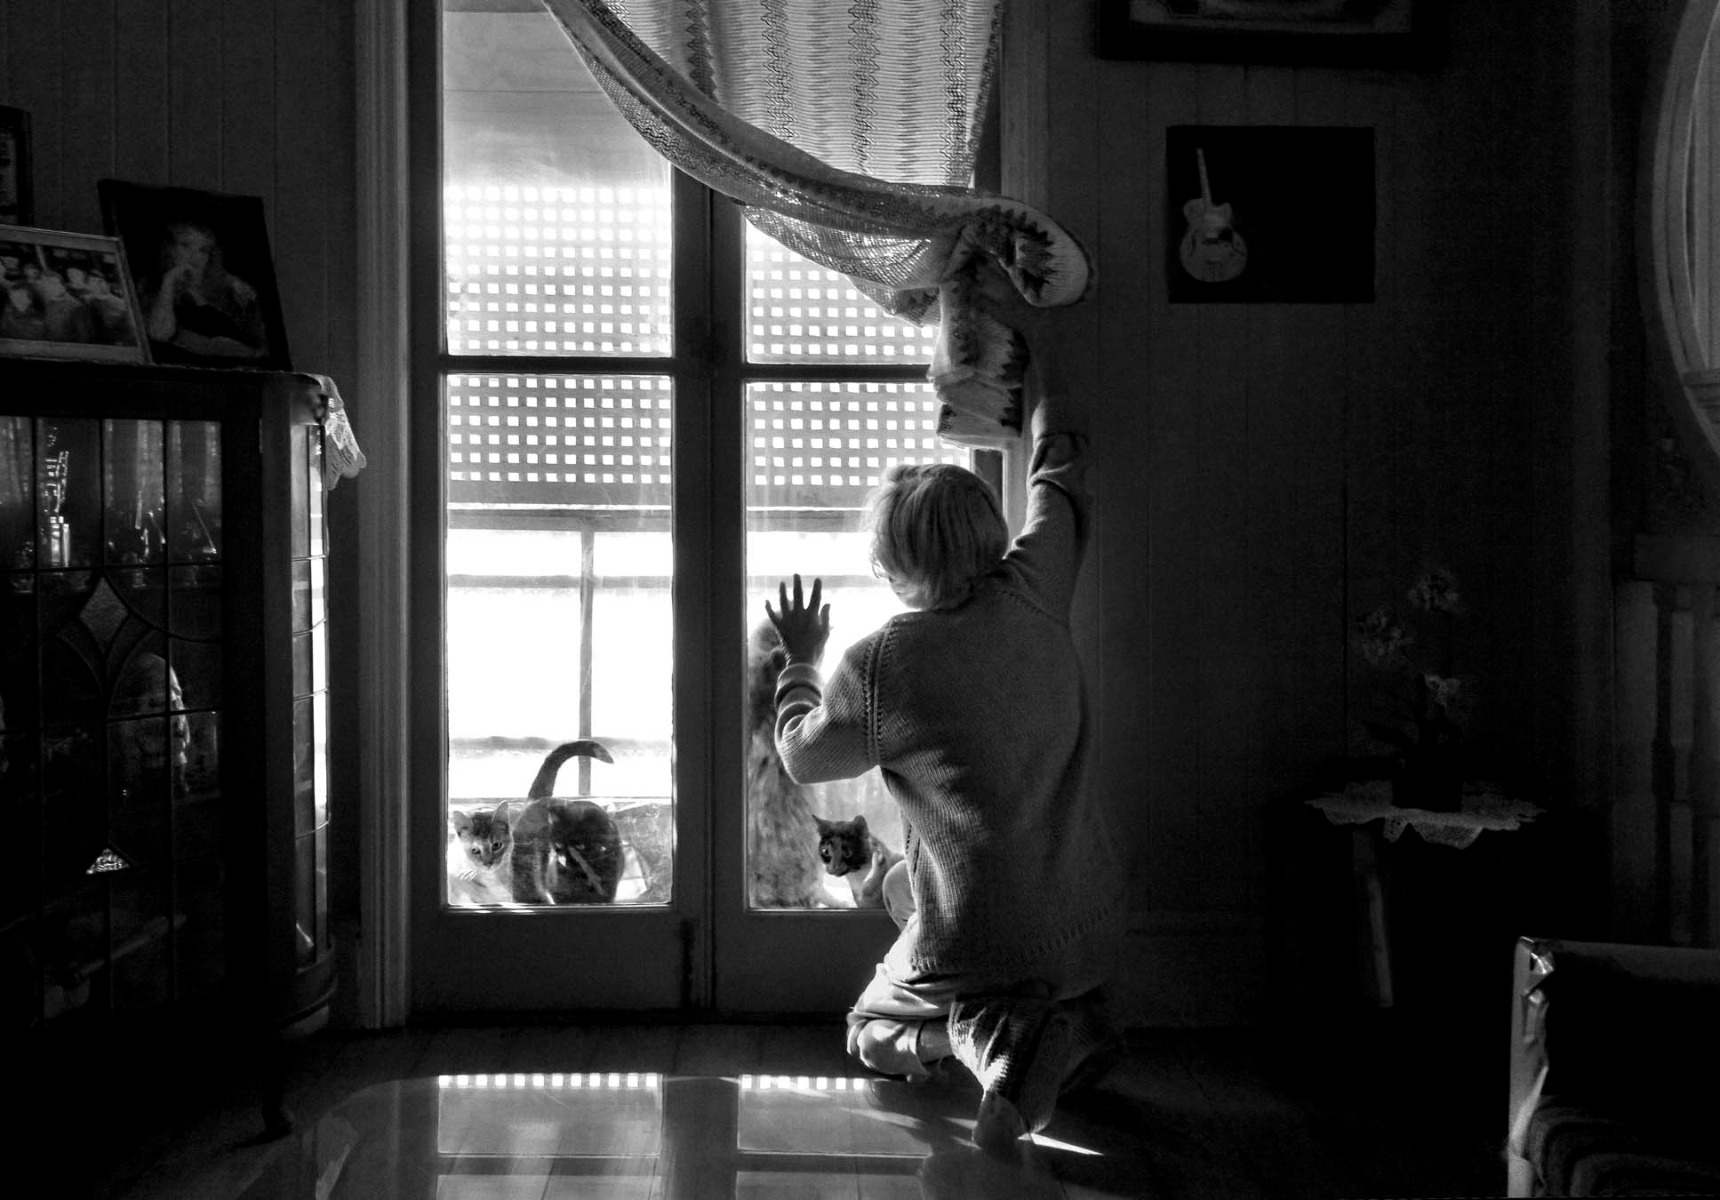 black-and-white-photo-of-child-t-the-window-pulling-away-curtain-with-cats-on-the-other-sode